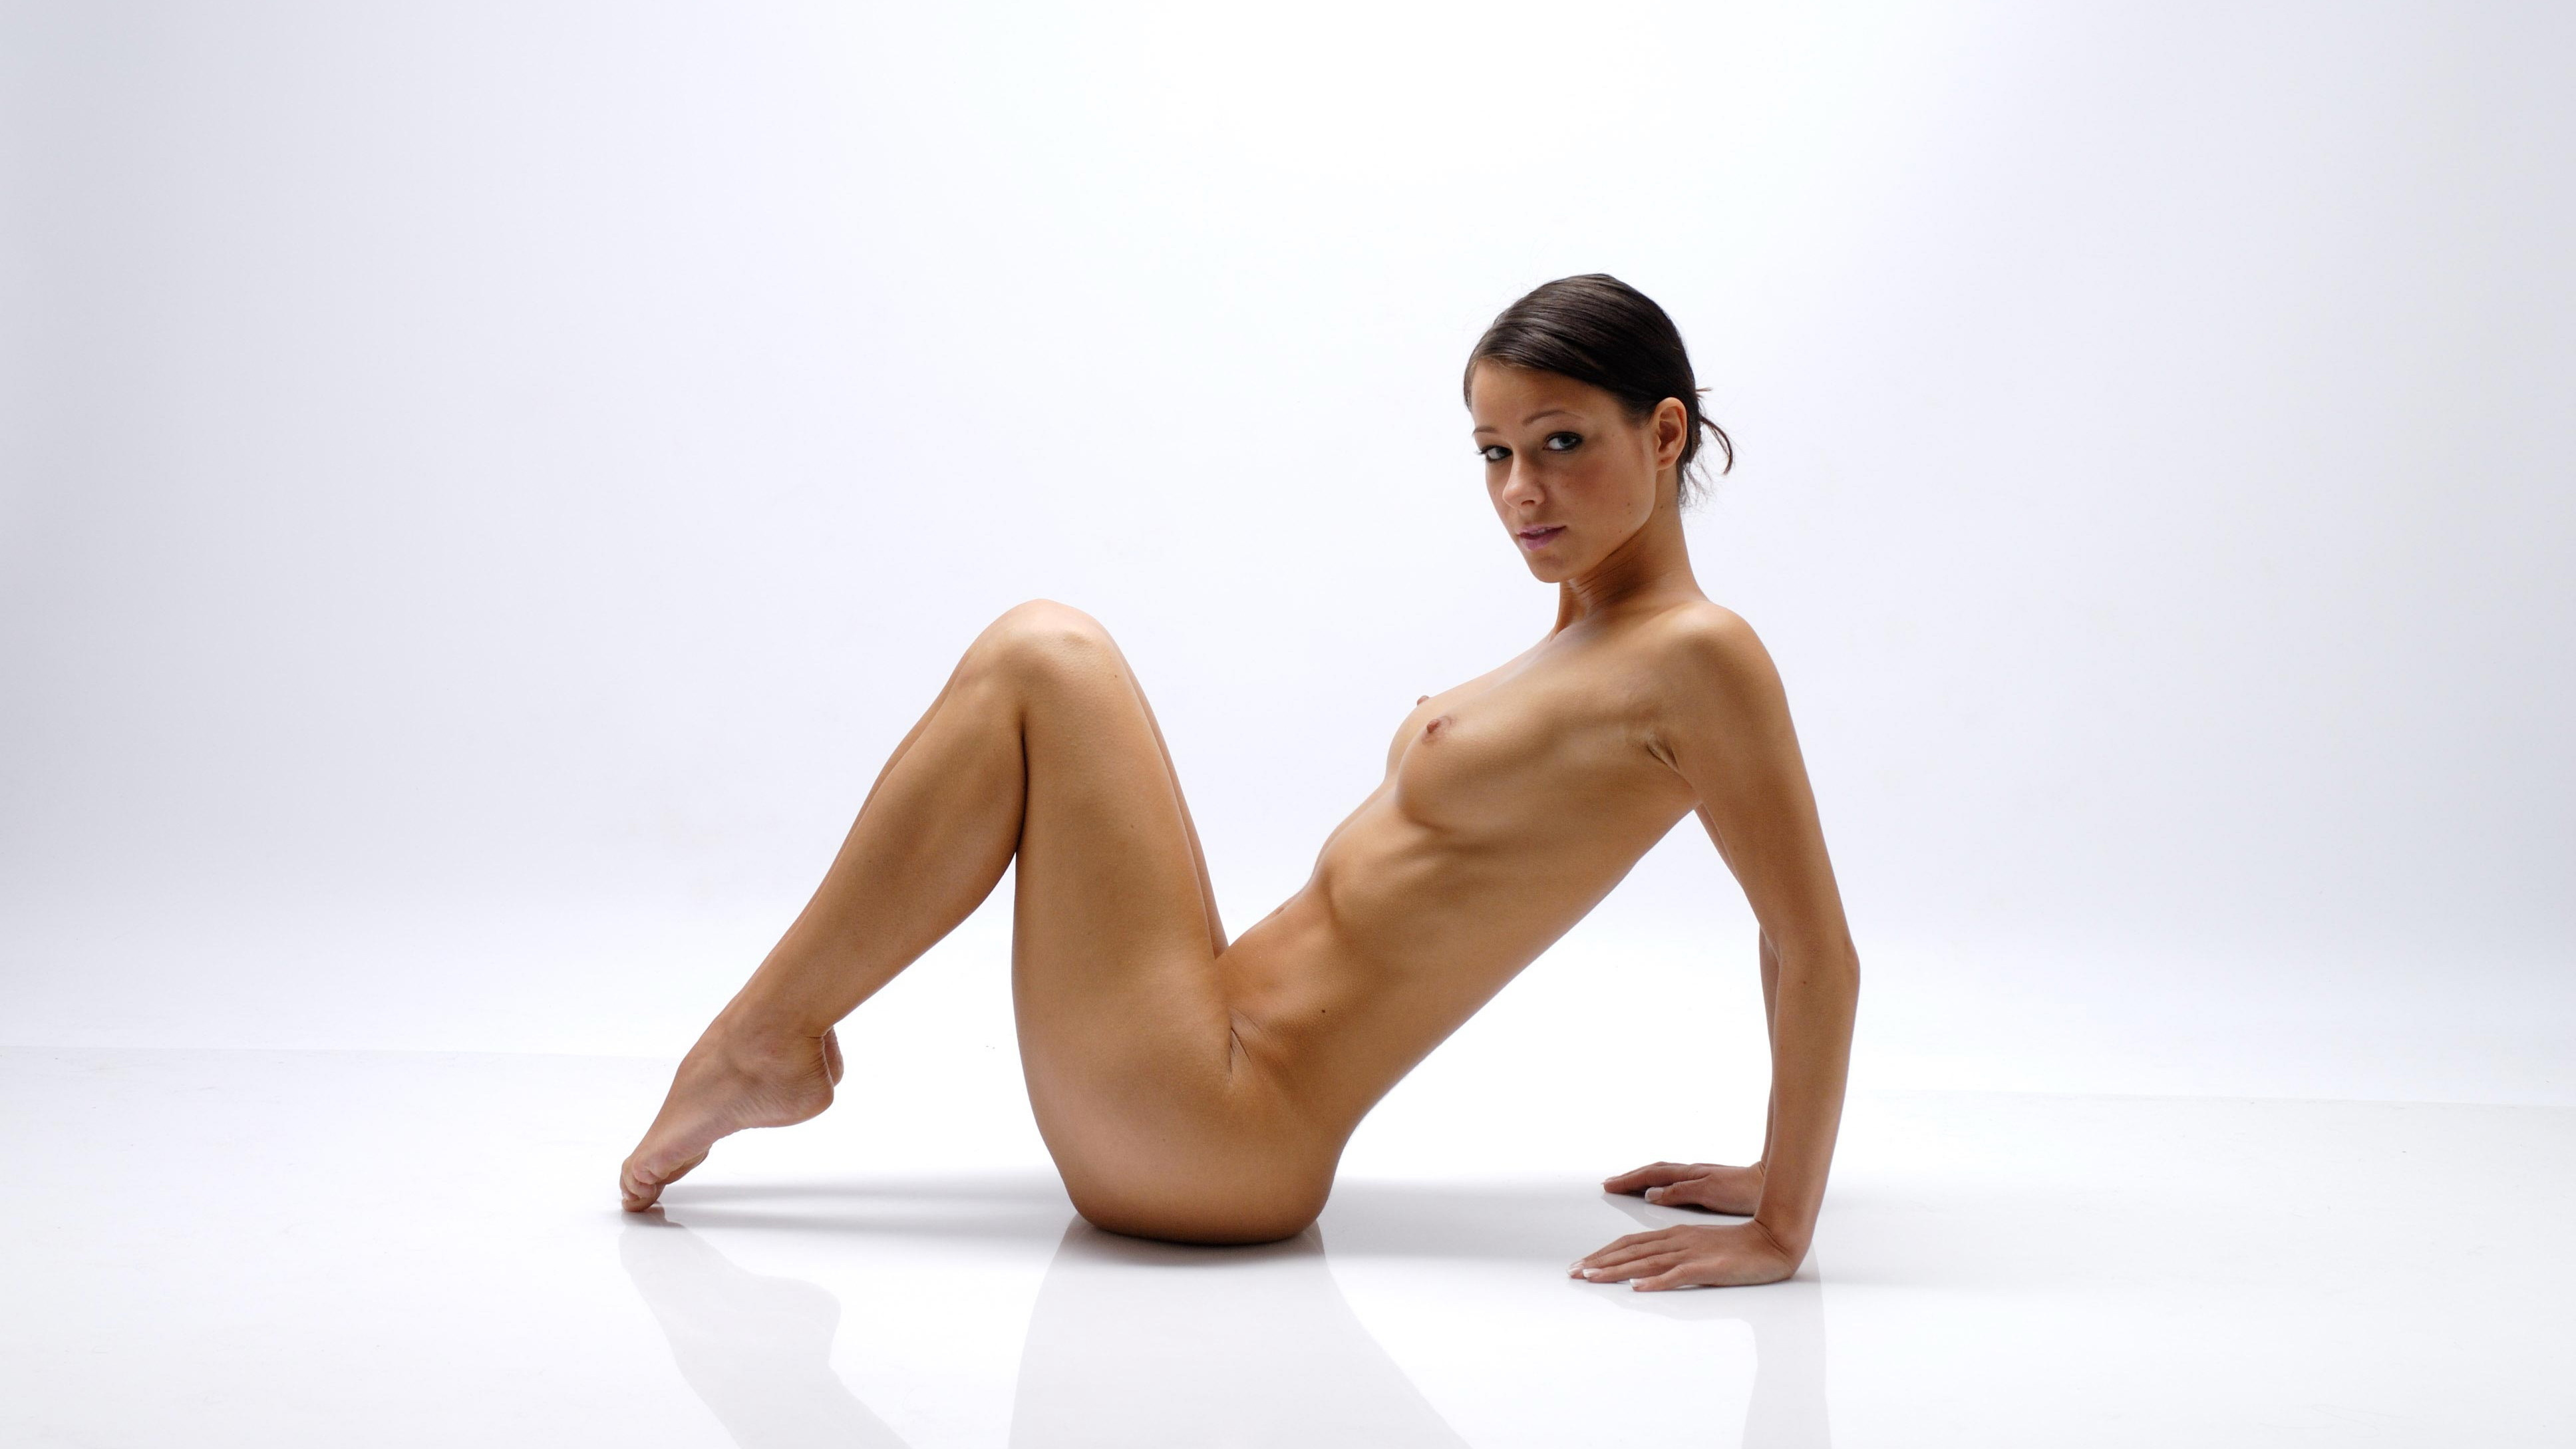 Action women nude pic cock competitions